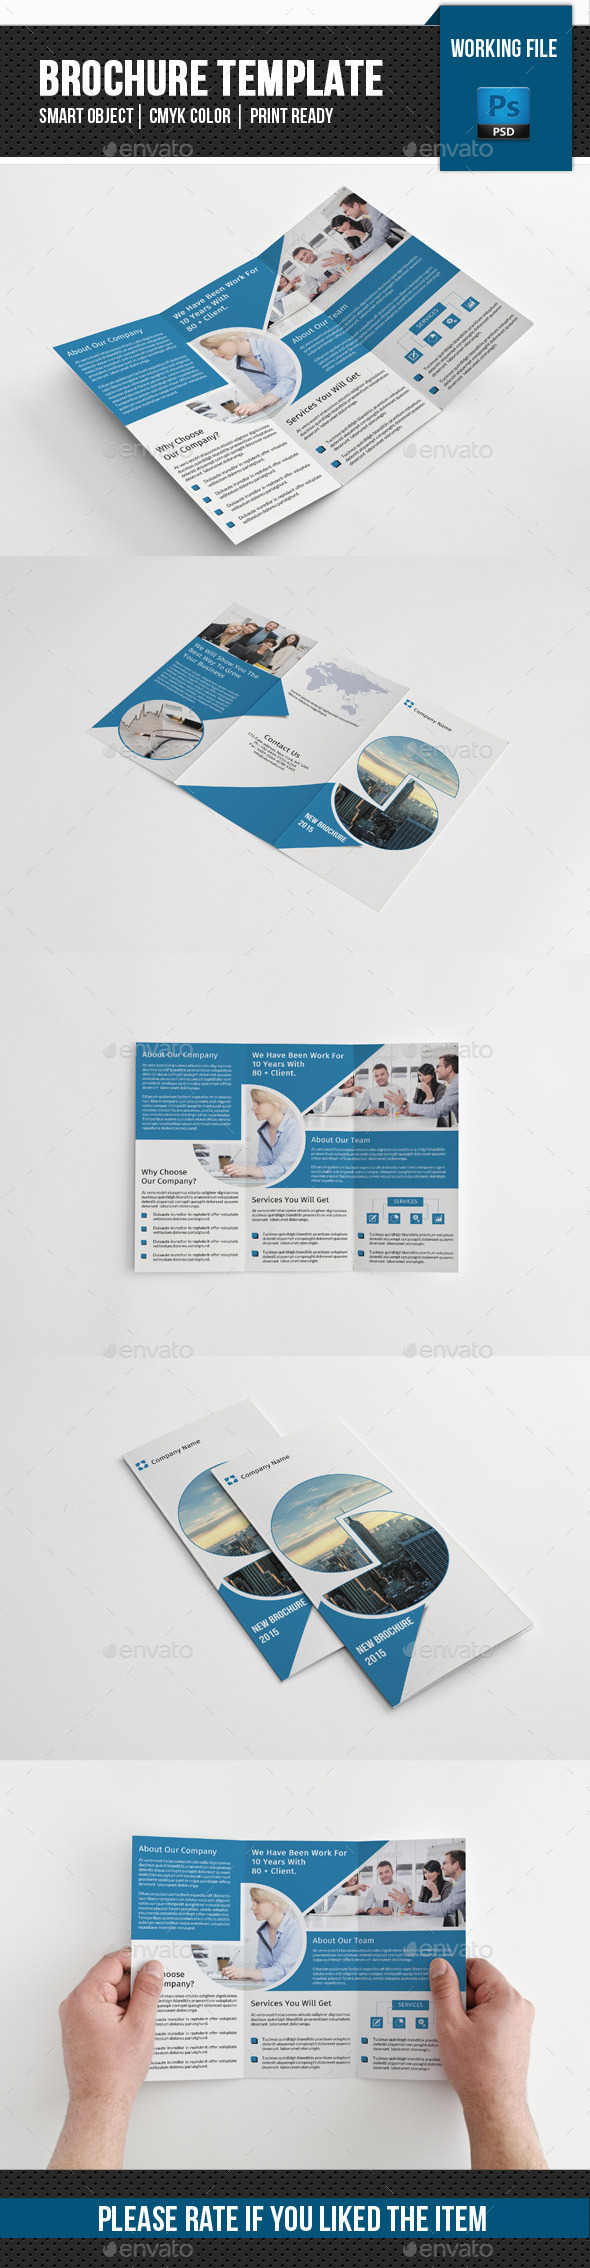 Corporate Trifold Brochure-V239 - Corporate Brochures